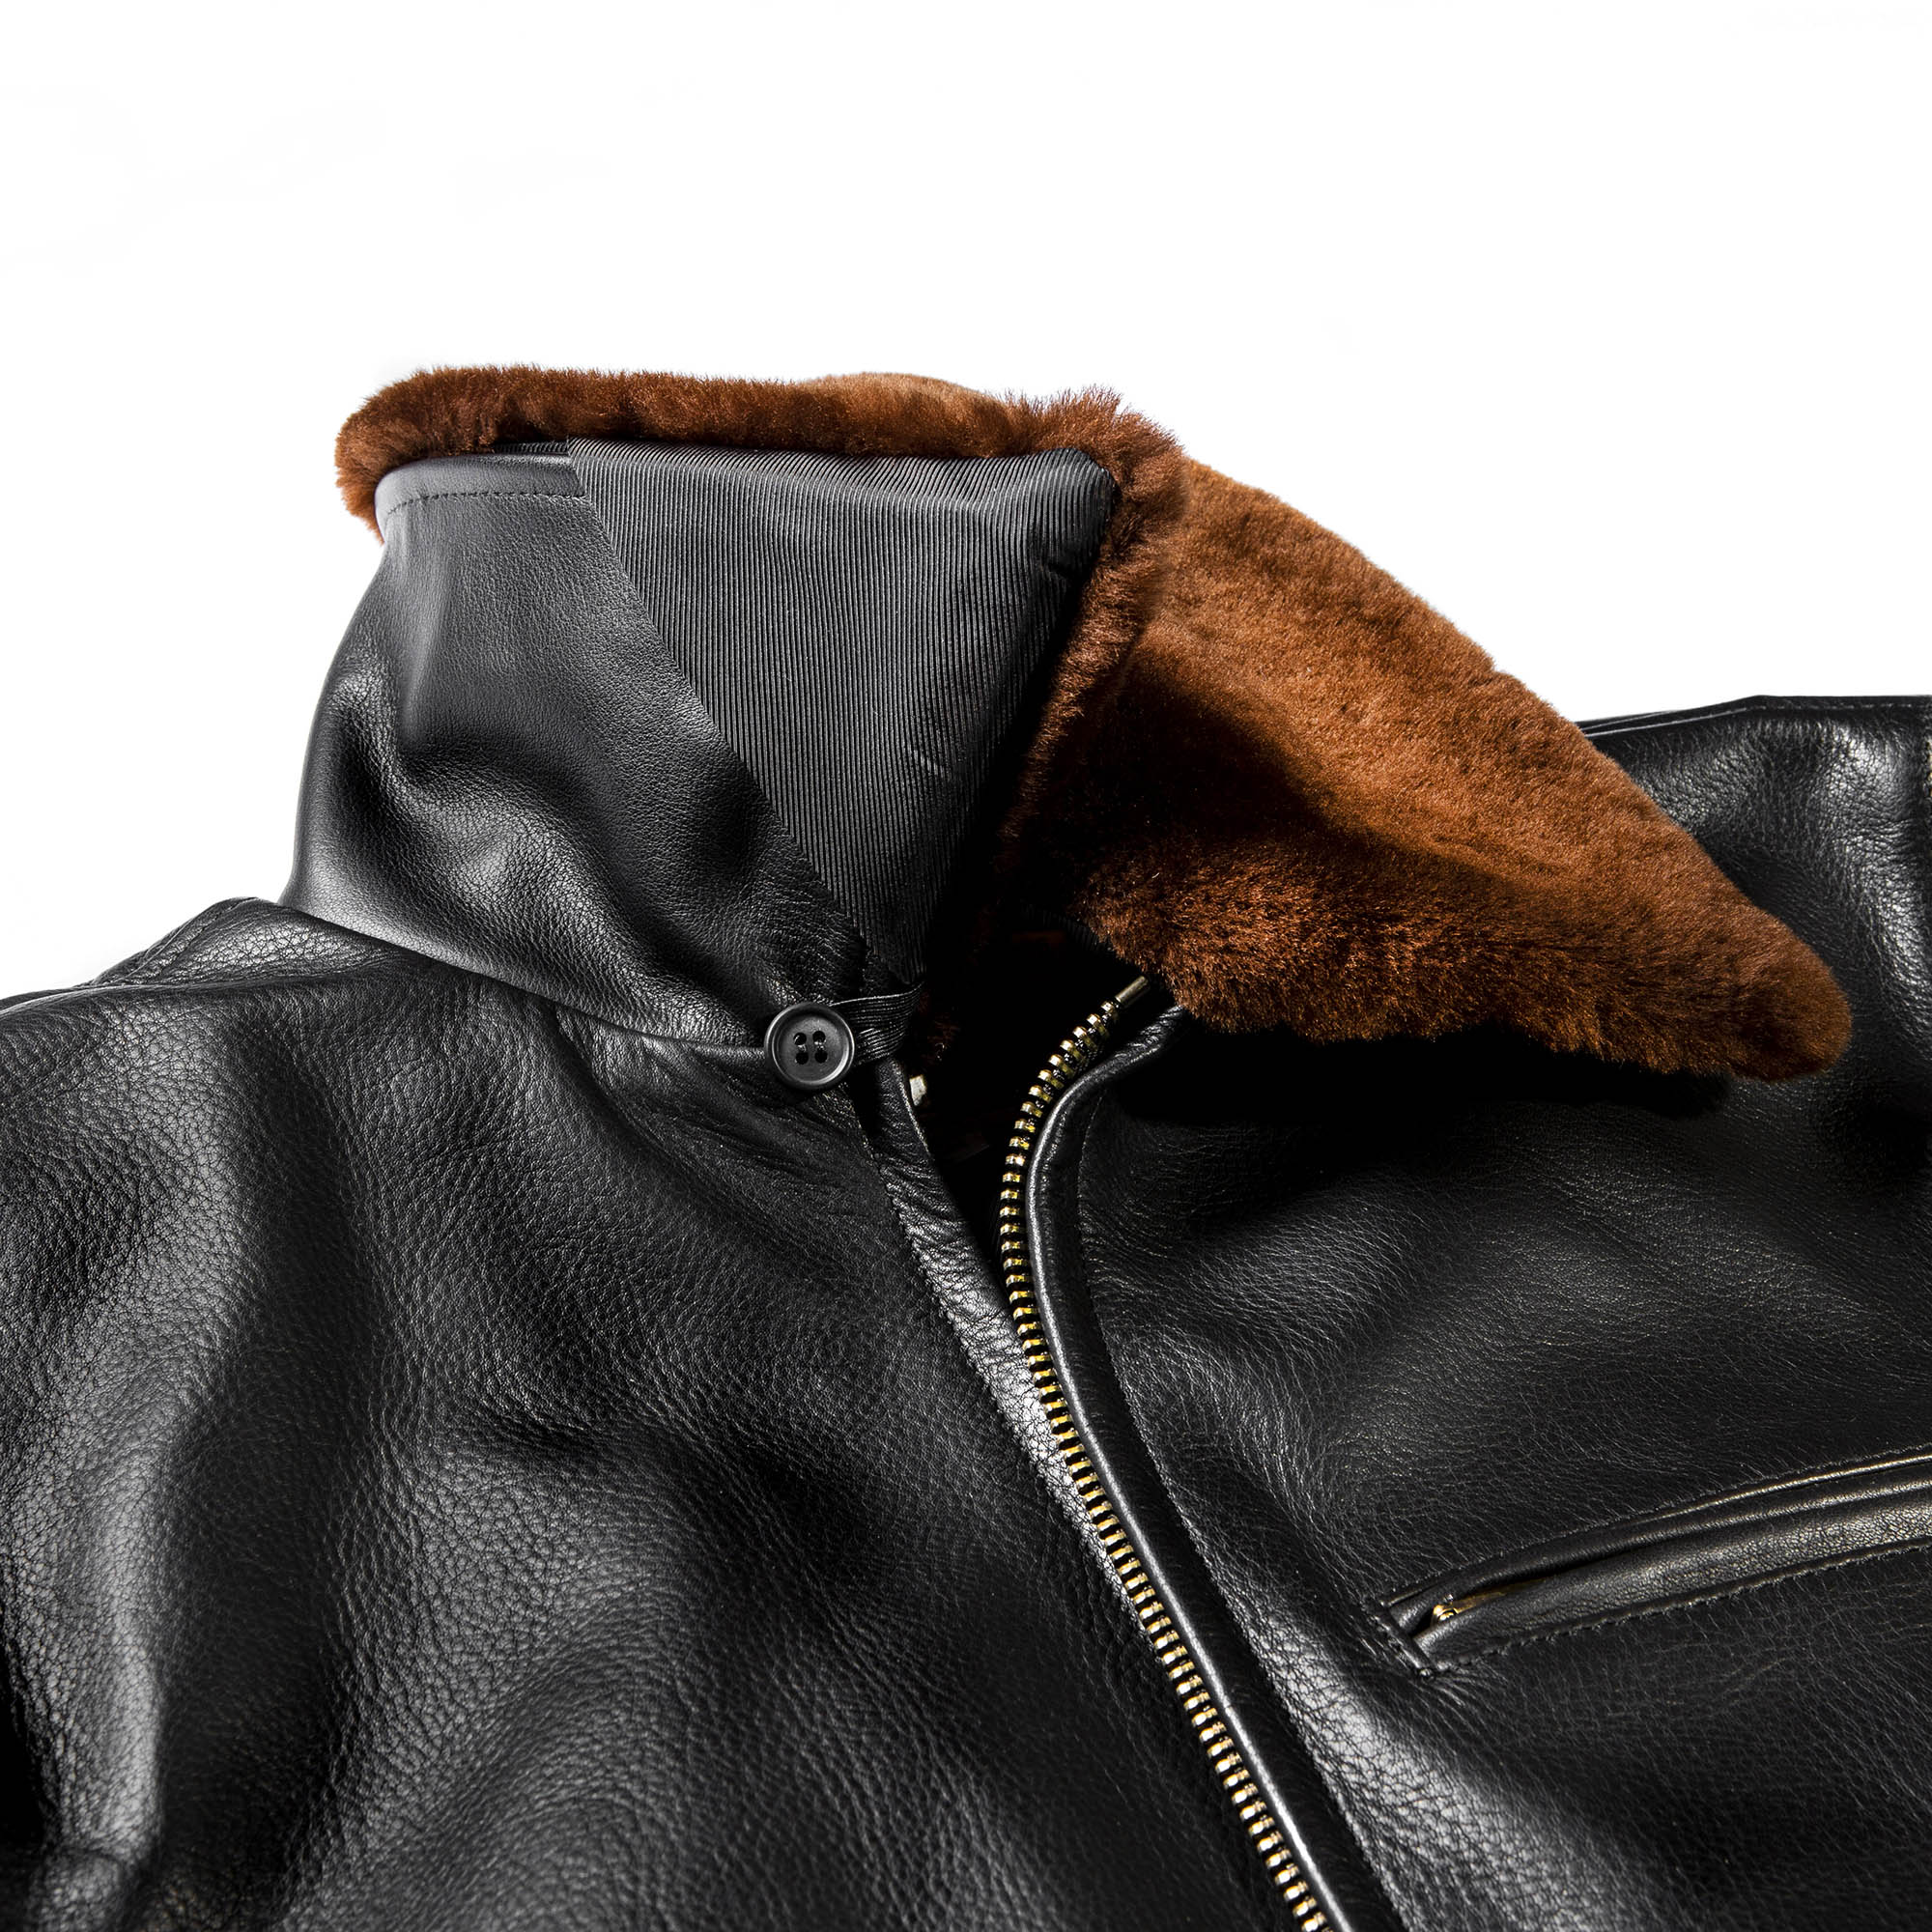 shangri-la-heritage-varenne-black-steerhide-shearling-jacket-still-life-collar-button